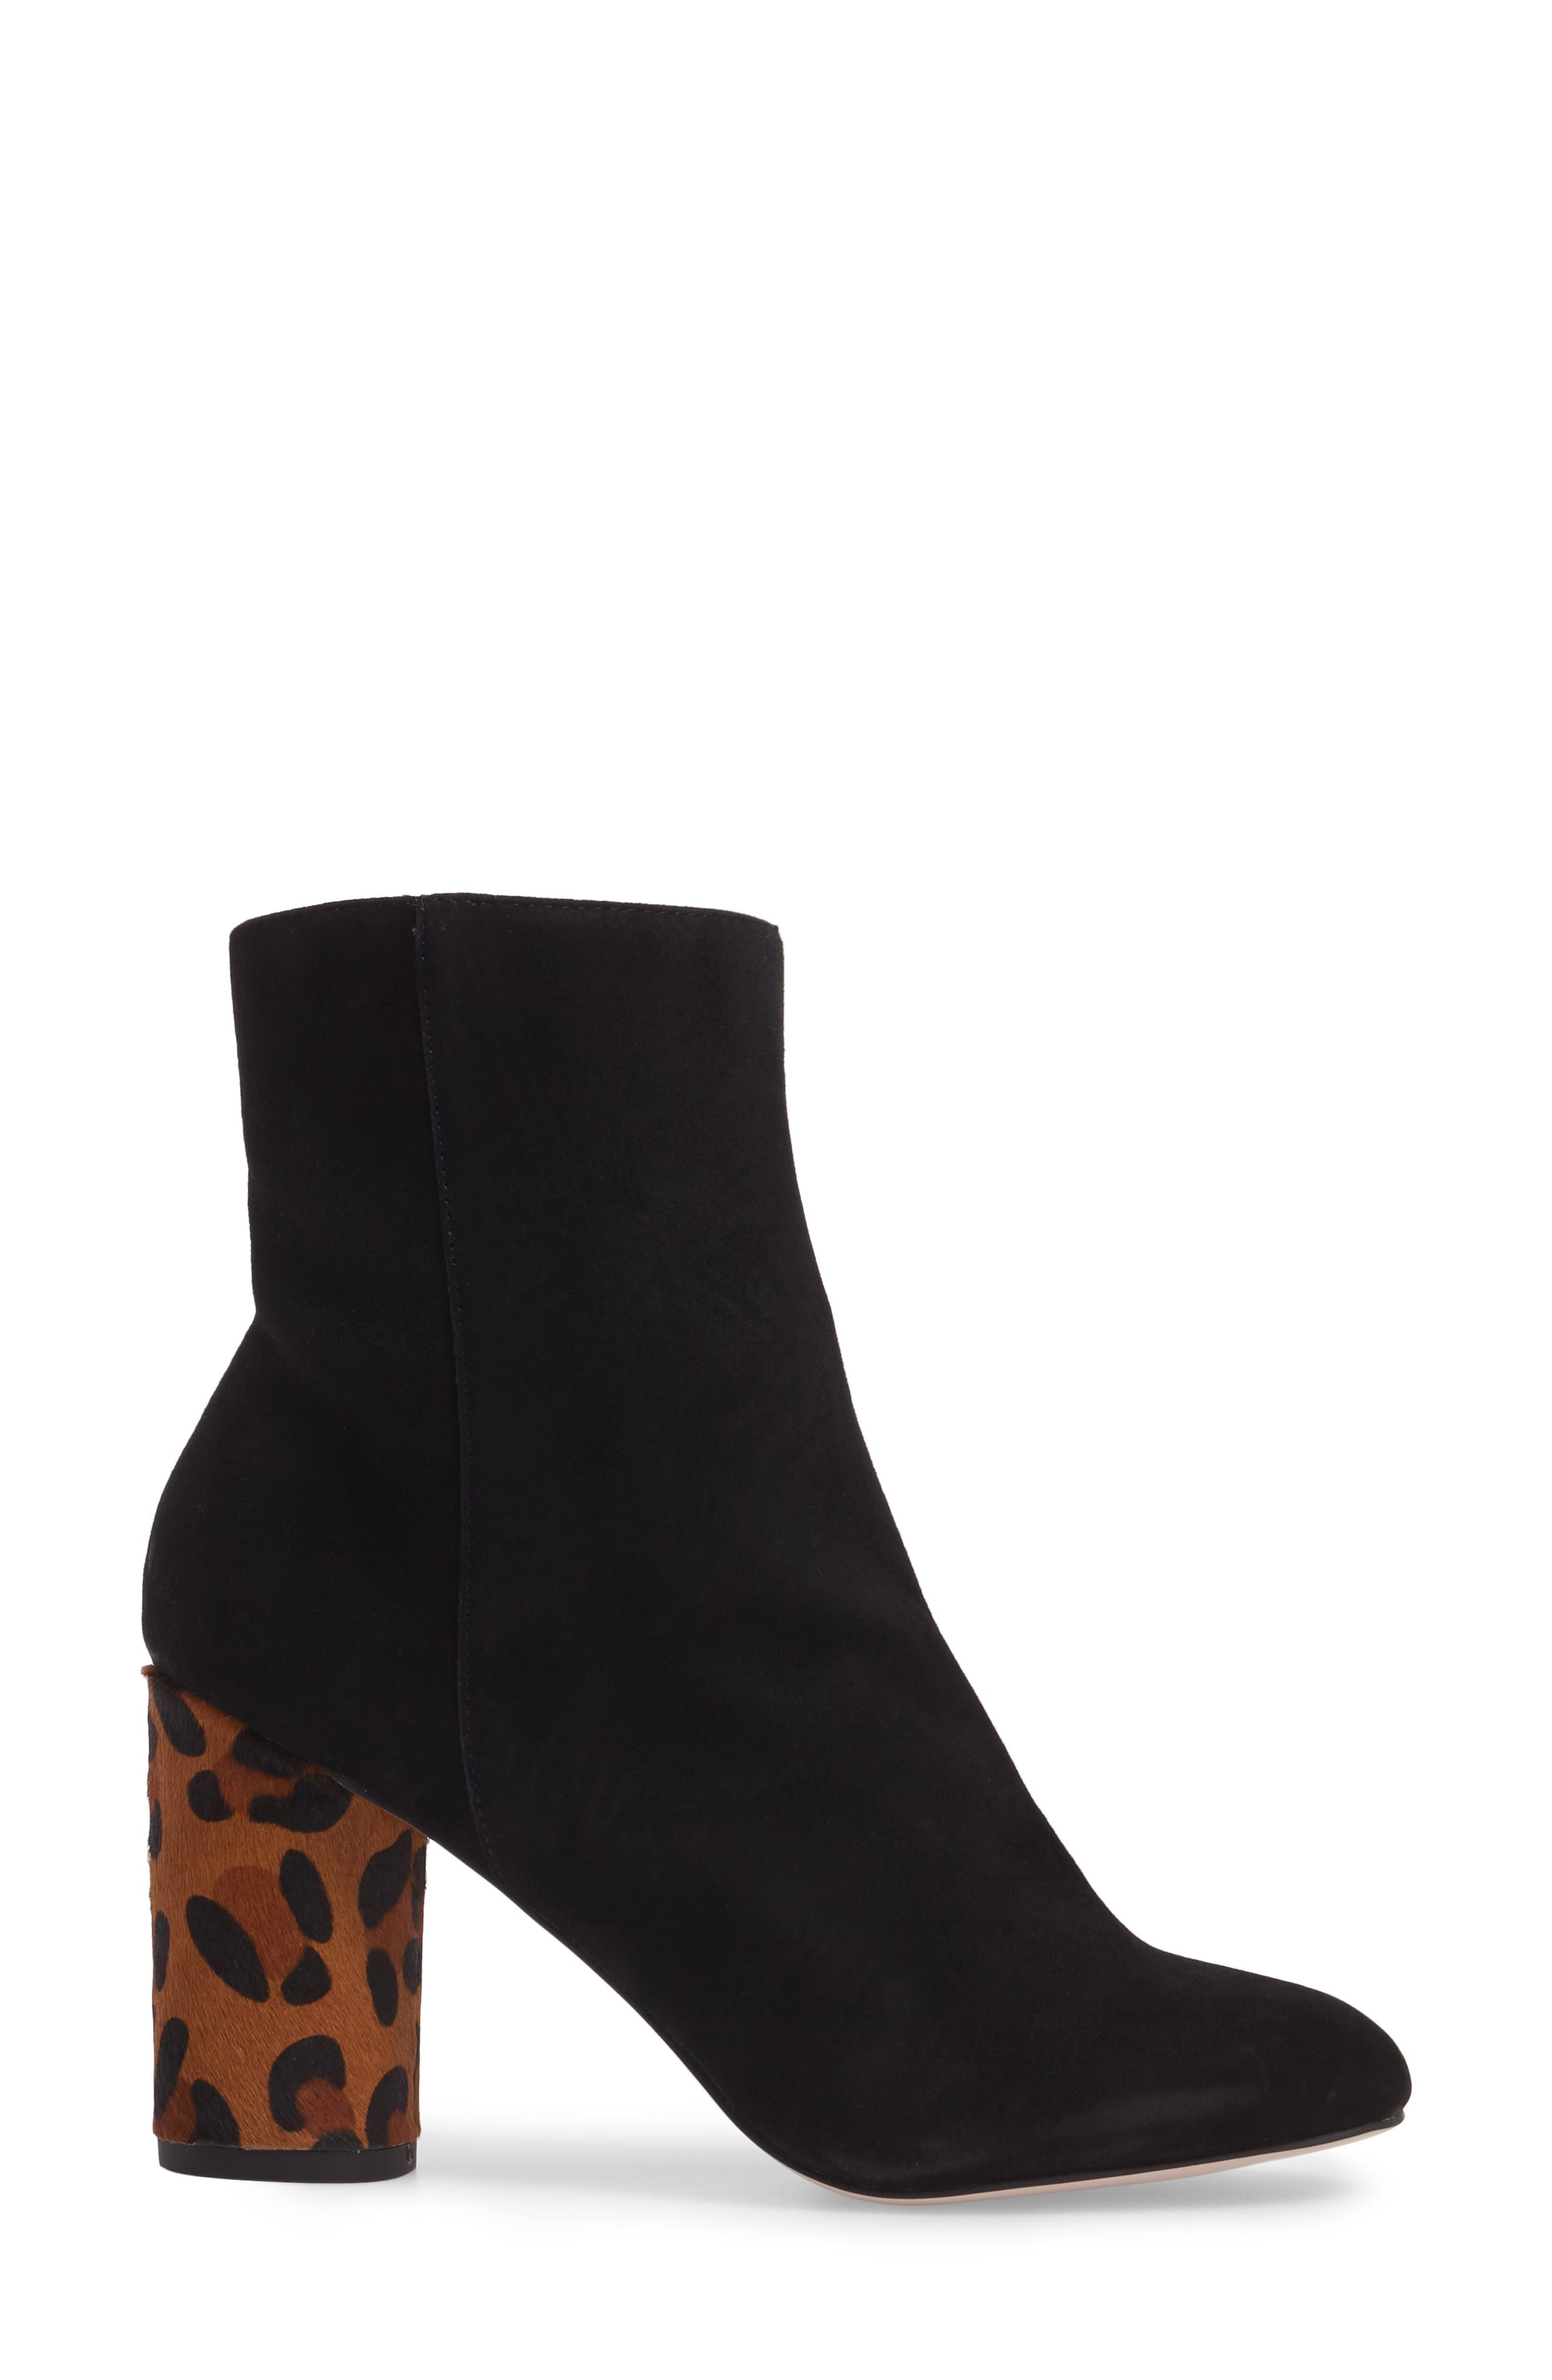 Mulholland Embroidered Boot,                             Alternate thumbnail 3, color,                             Black With Leopard Heel